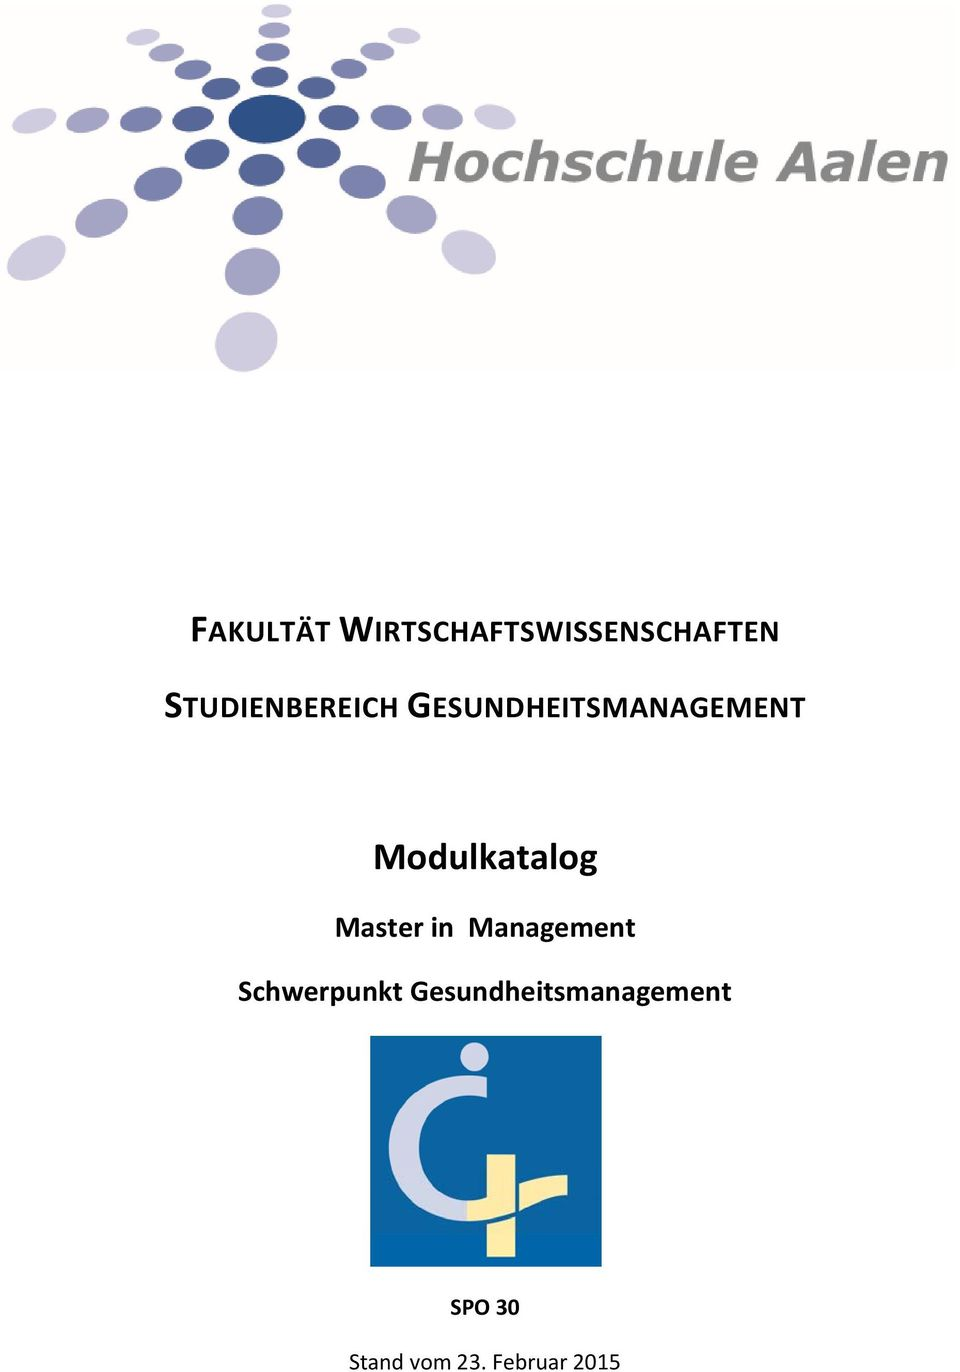 Modulkatalog Master in Management